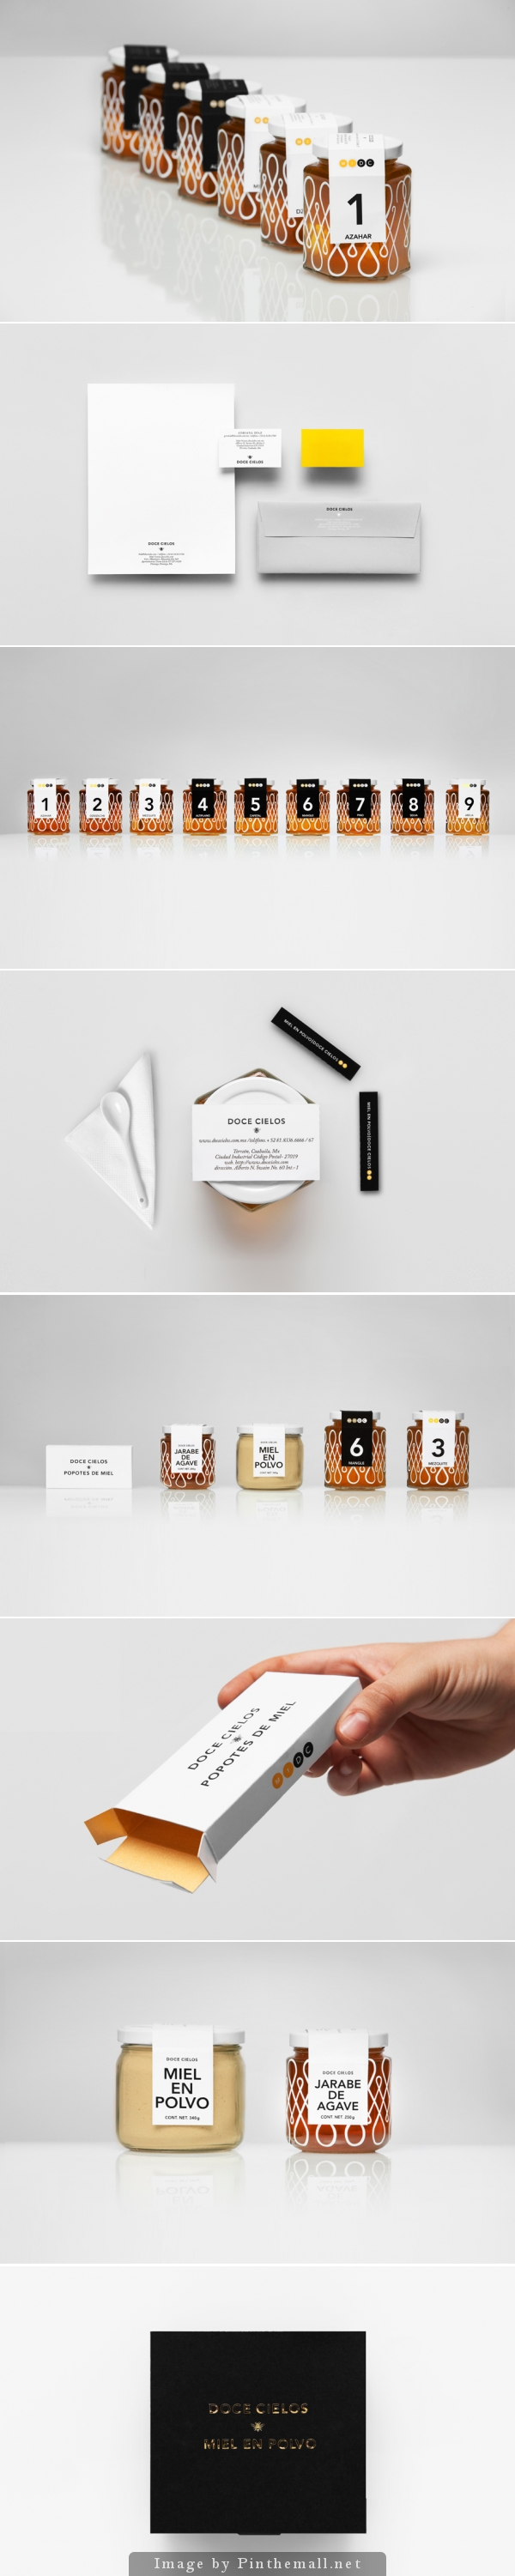 I'm in love with this Anagrama honey #packaging and #branding curated by Packaging Diva PD created via http://www.anagrama.com/portafolio/125-doce-cielos